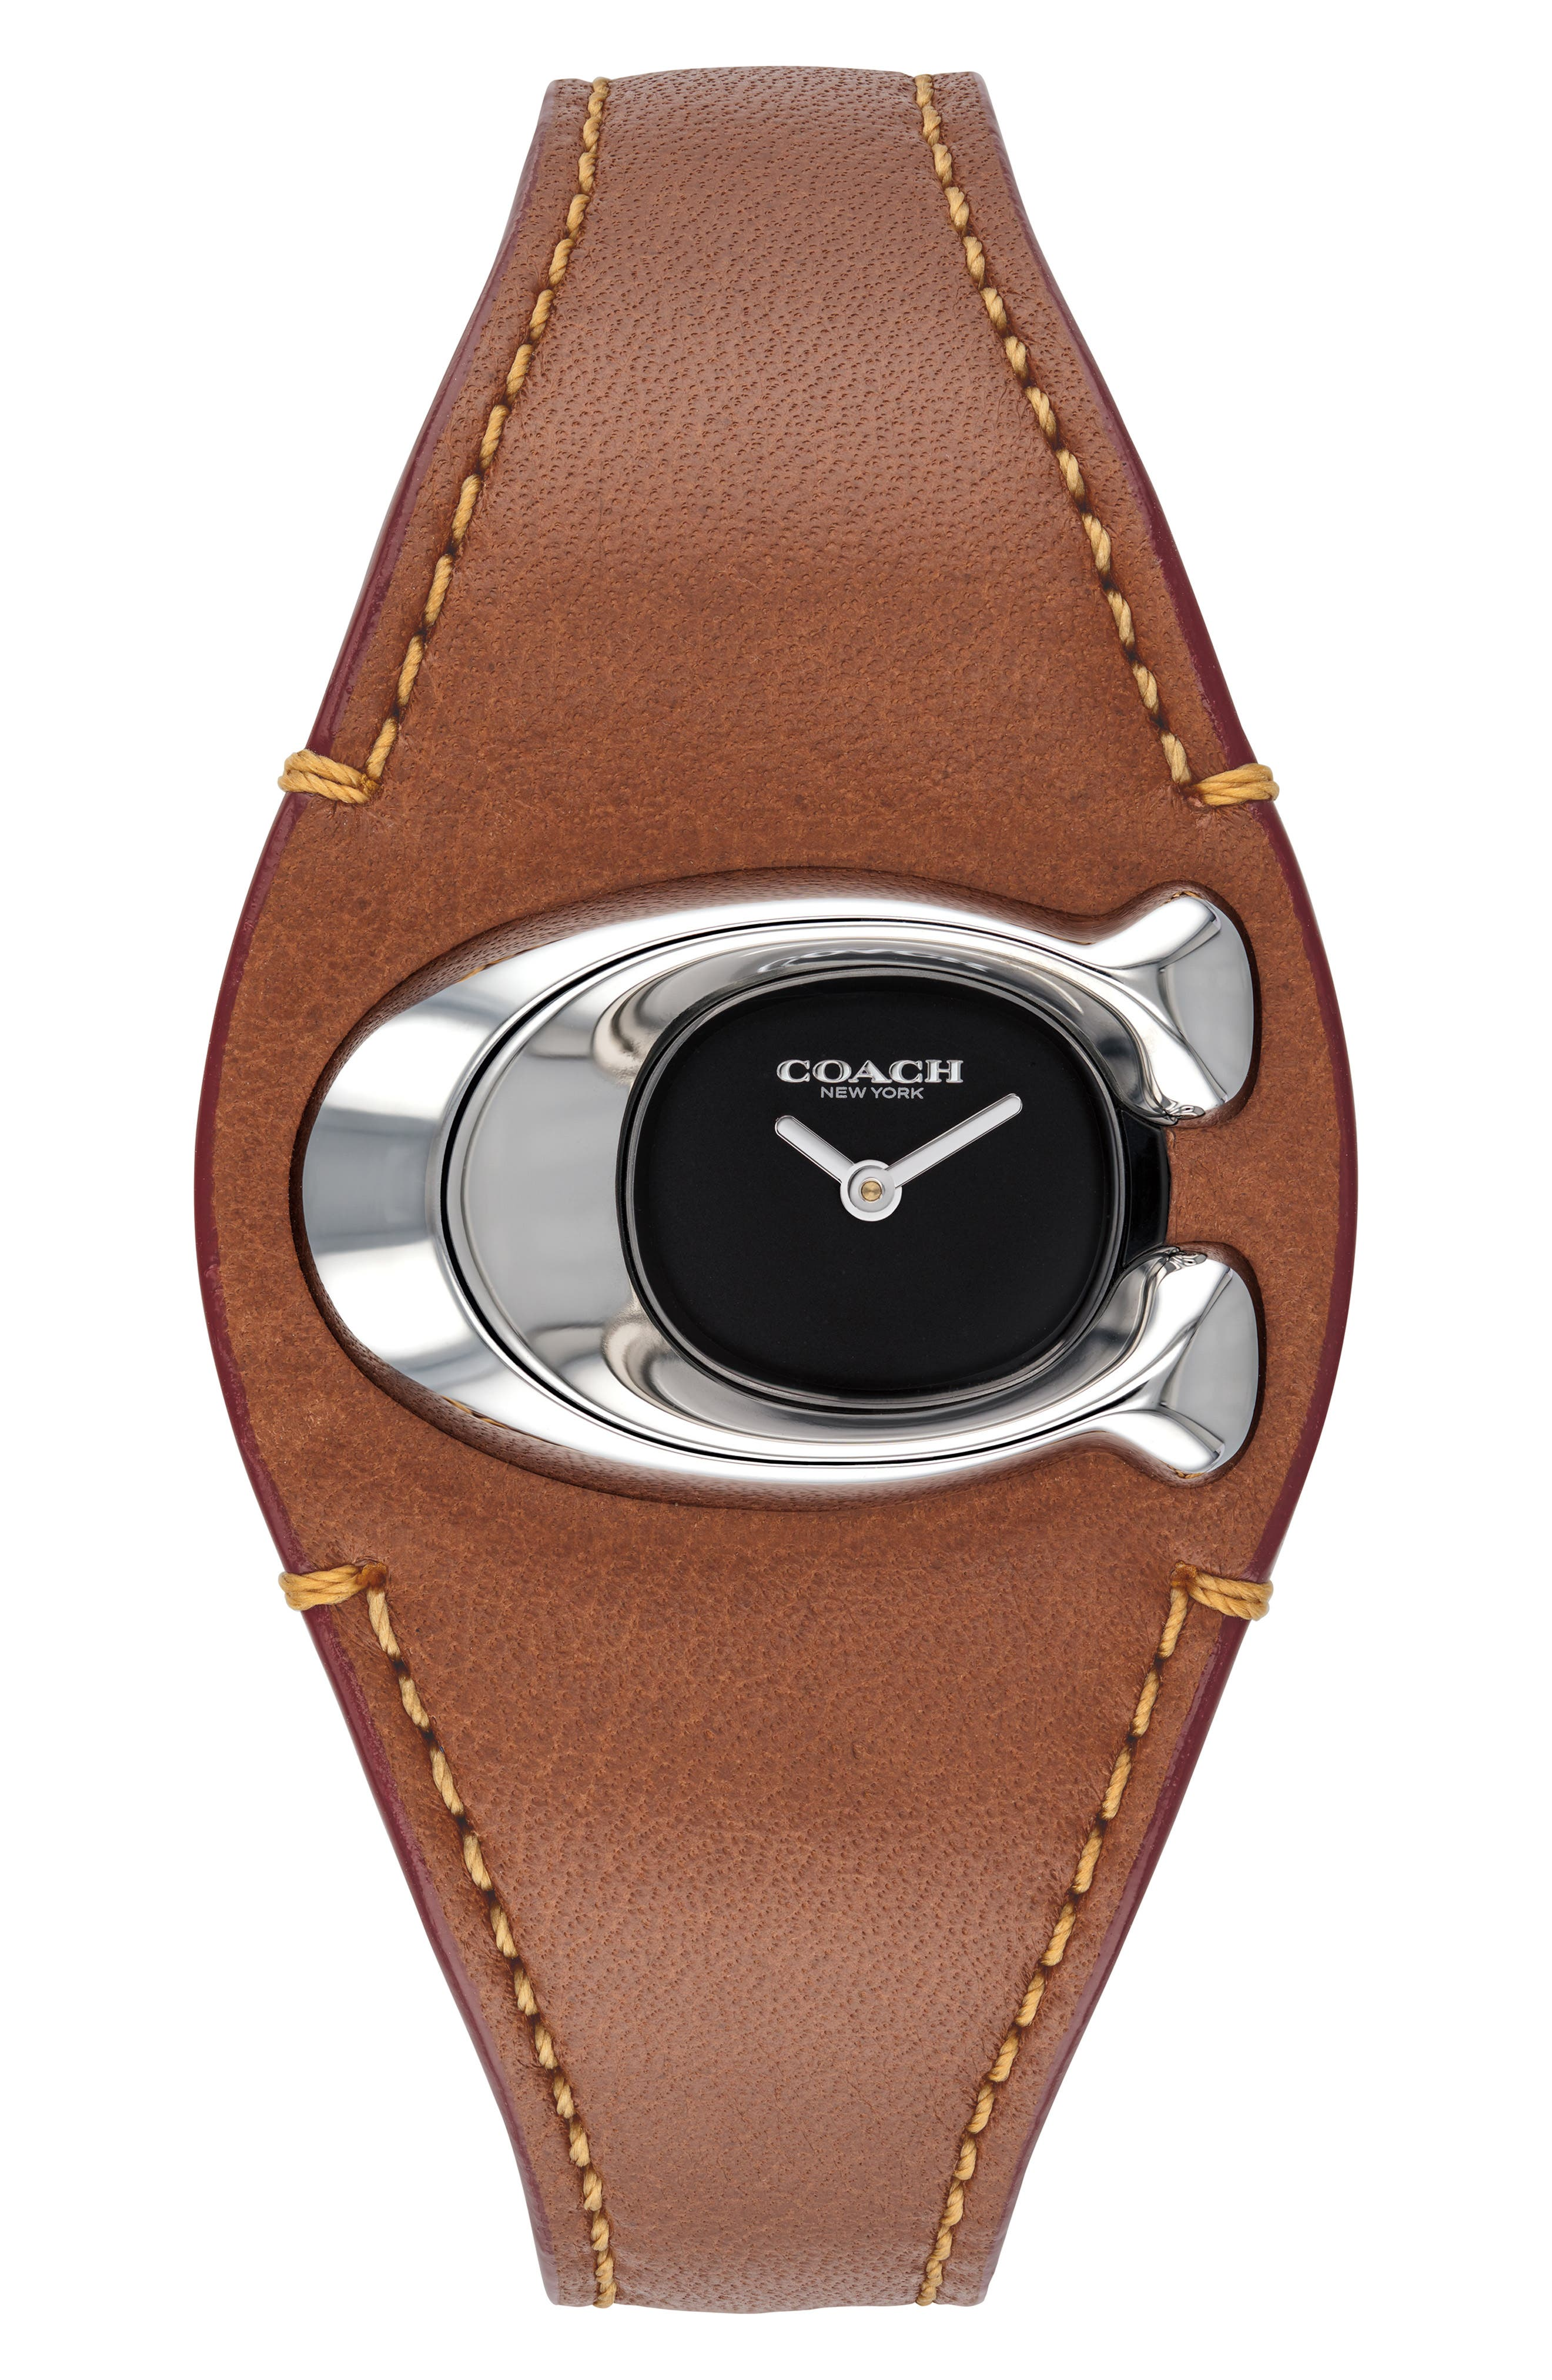 COACH Signature C Leather Strap Watch, 29mm x 21mm, Main, color, 200